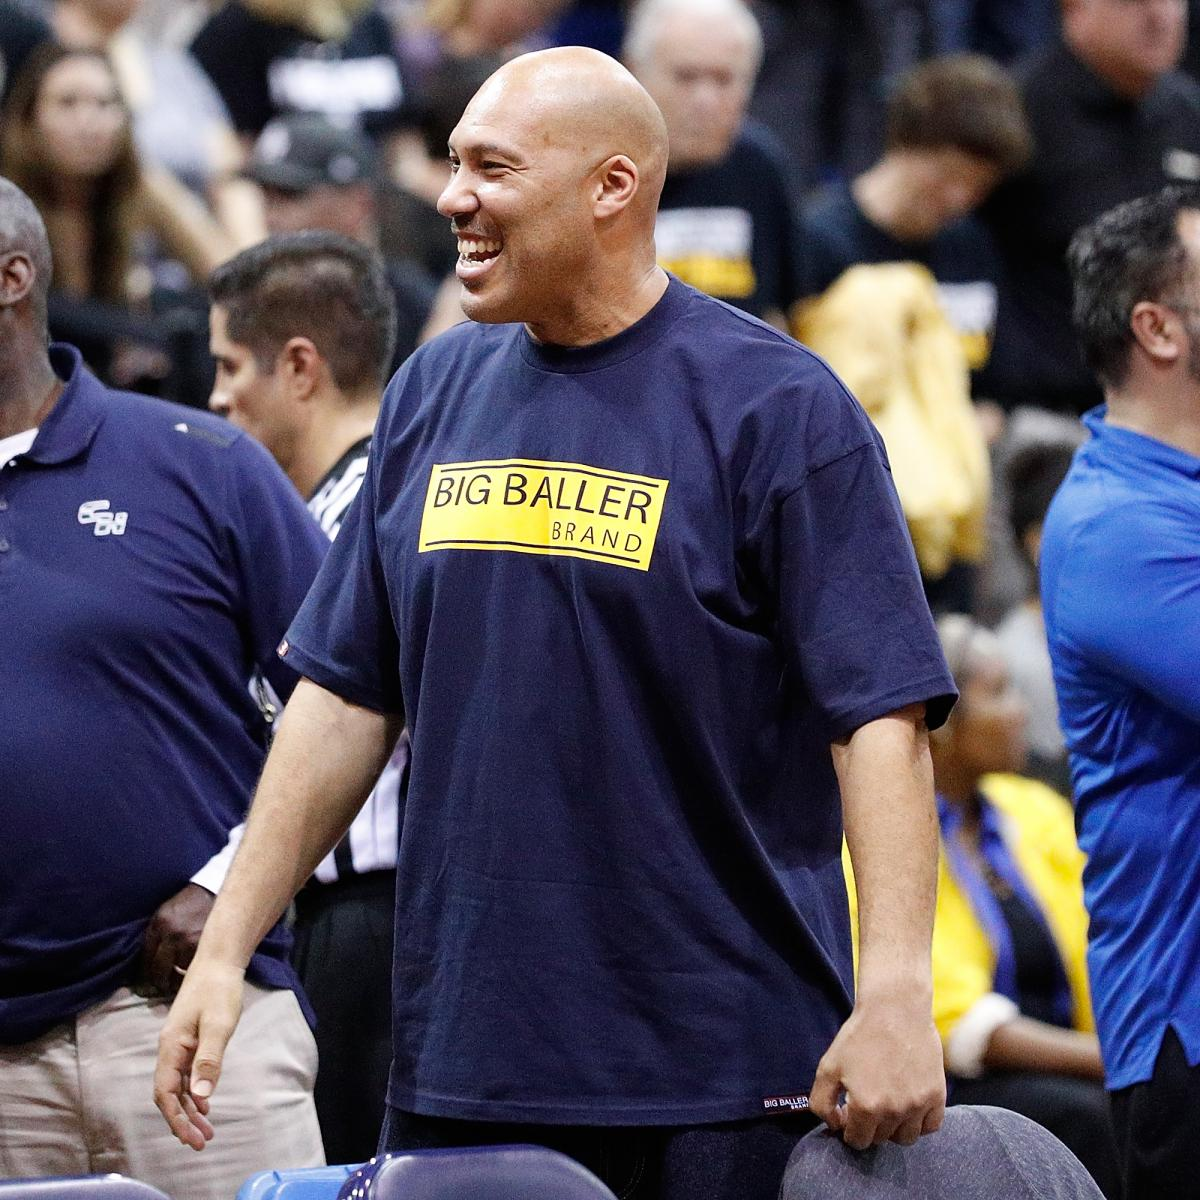 Shooting In Peyton Colorado: Ice Cube Offers To Buy Big Baller Brand Shoes If LaVar